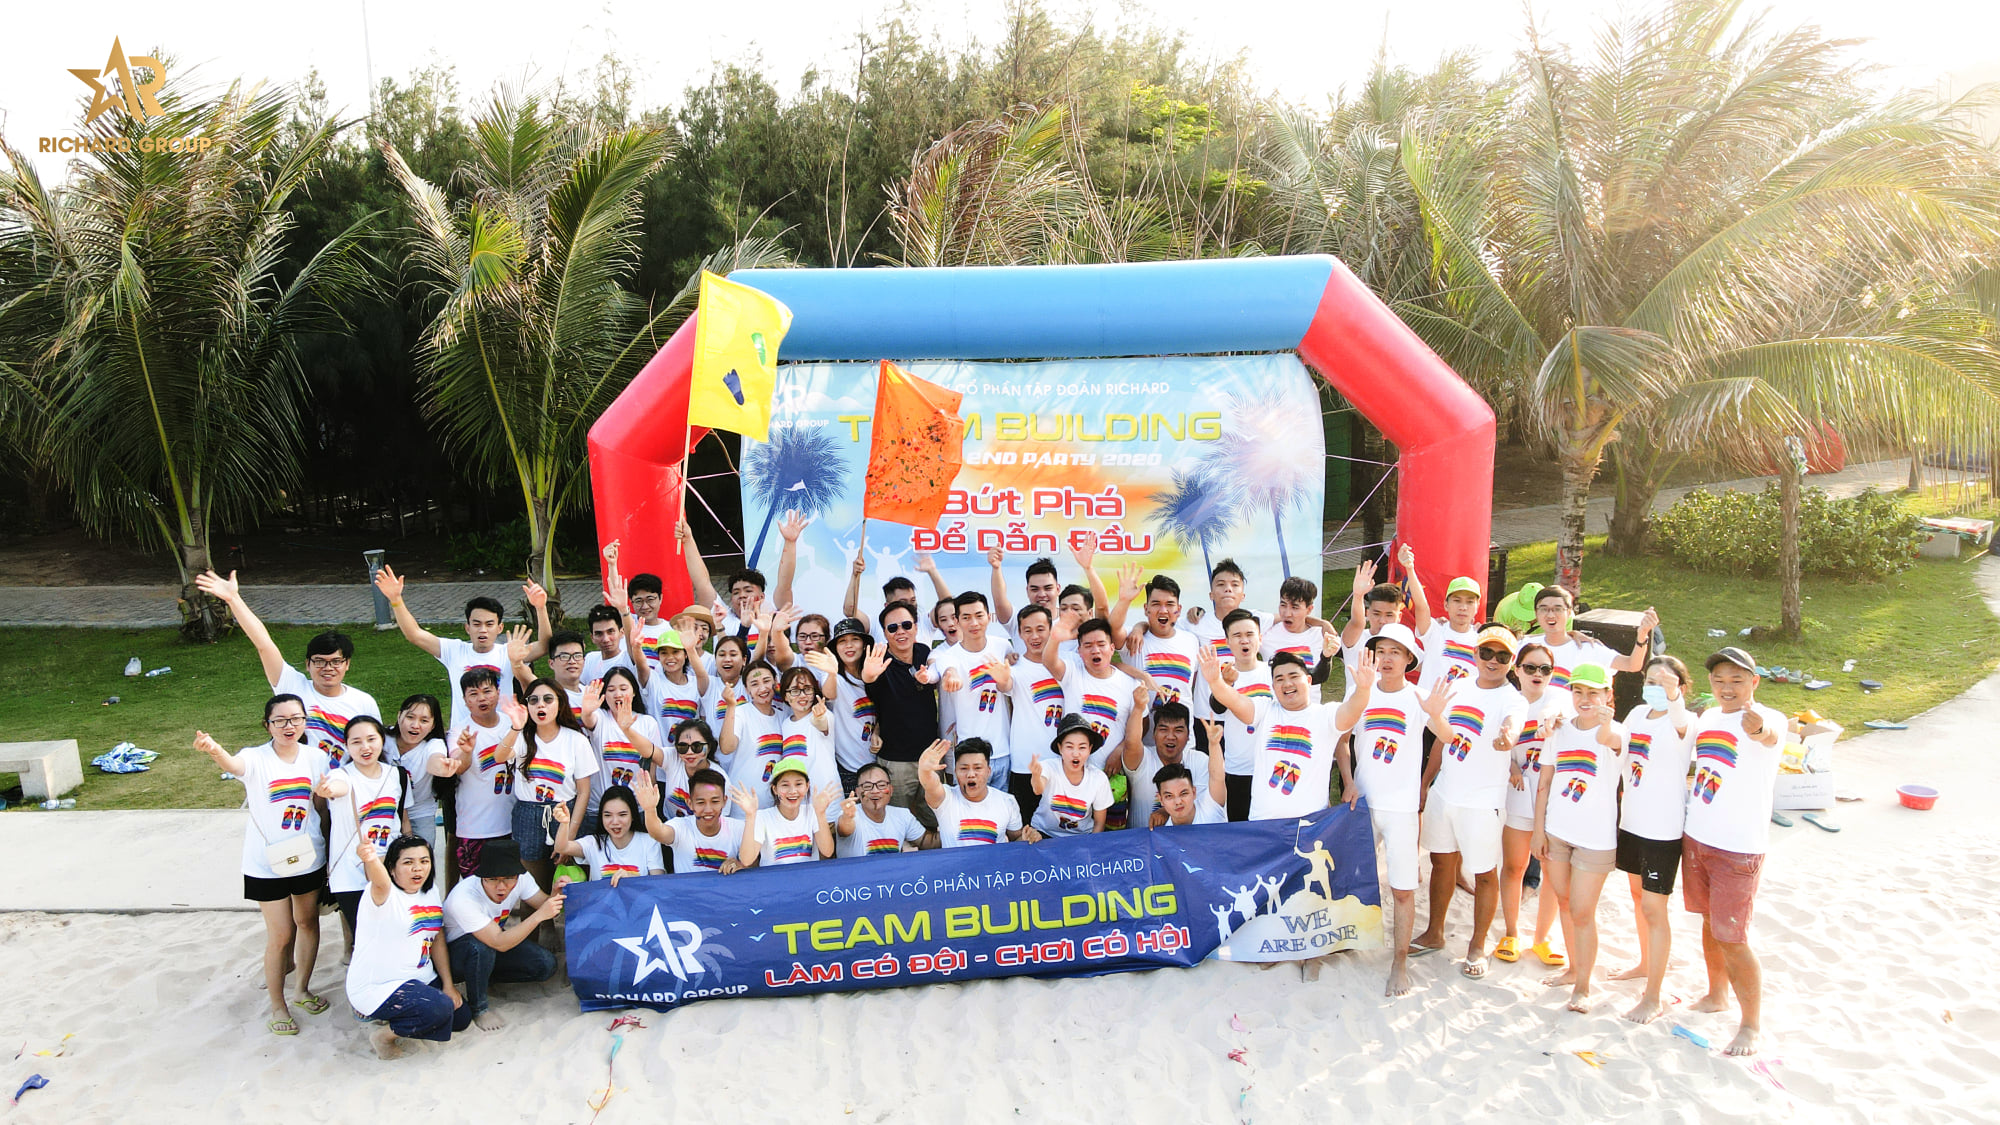 Team building and year end party